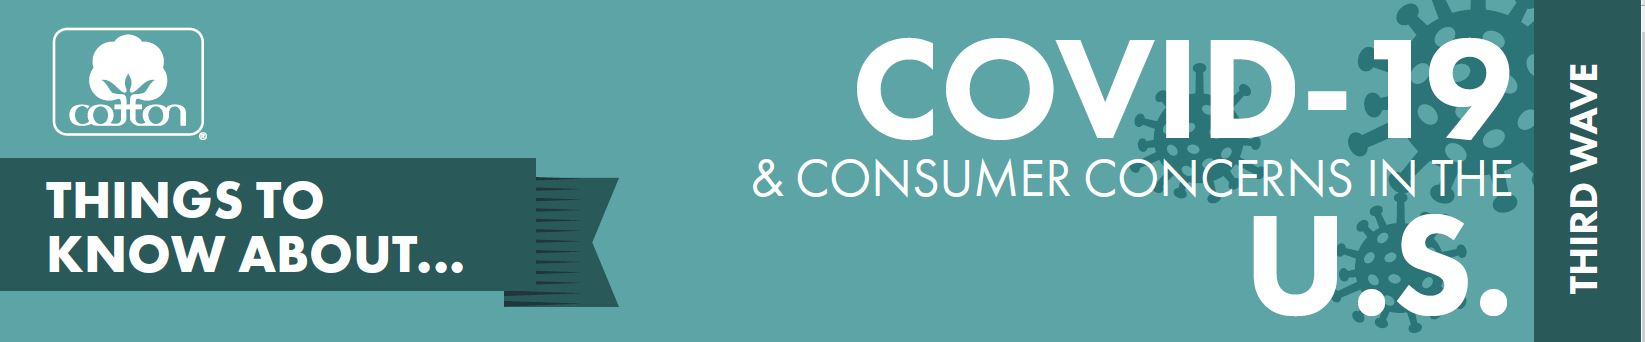 COVID-19 and the U.S. Consumer (Wave III)